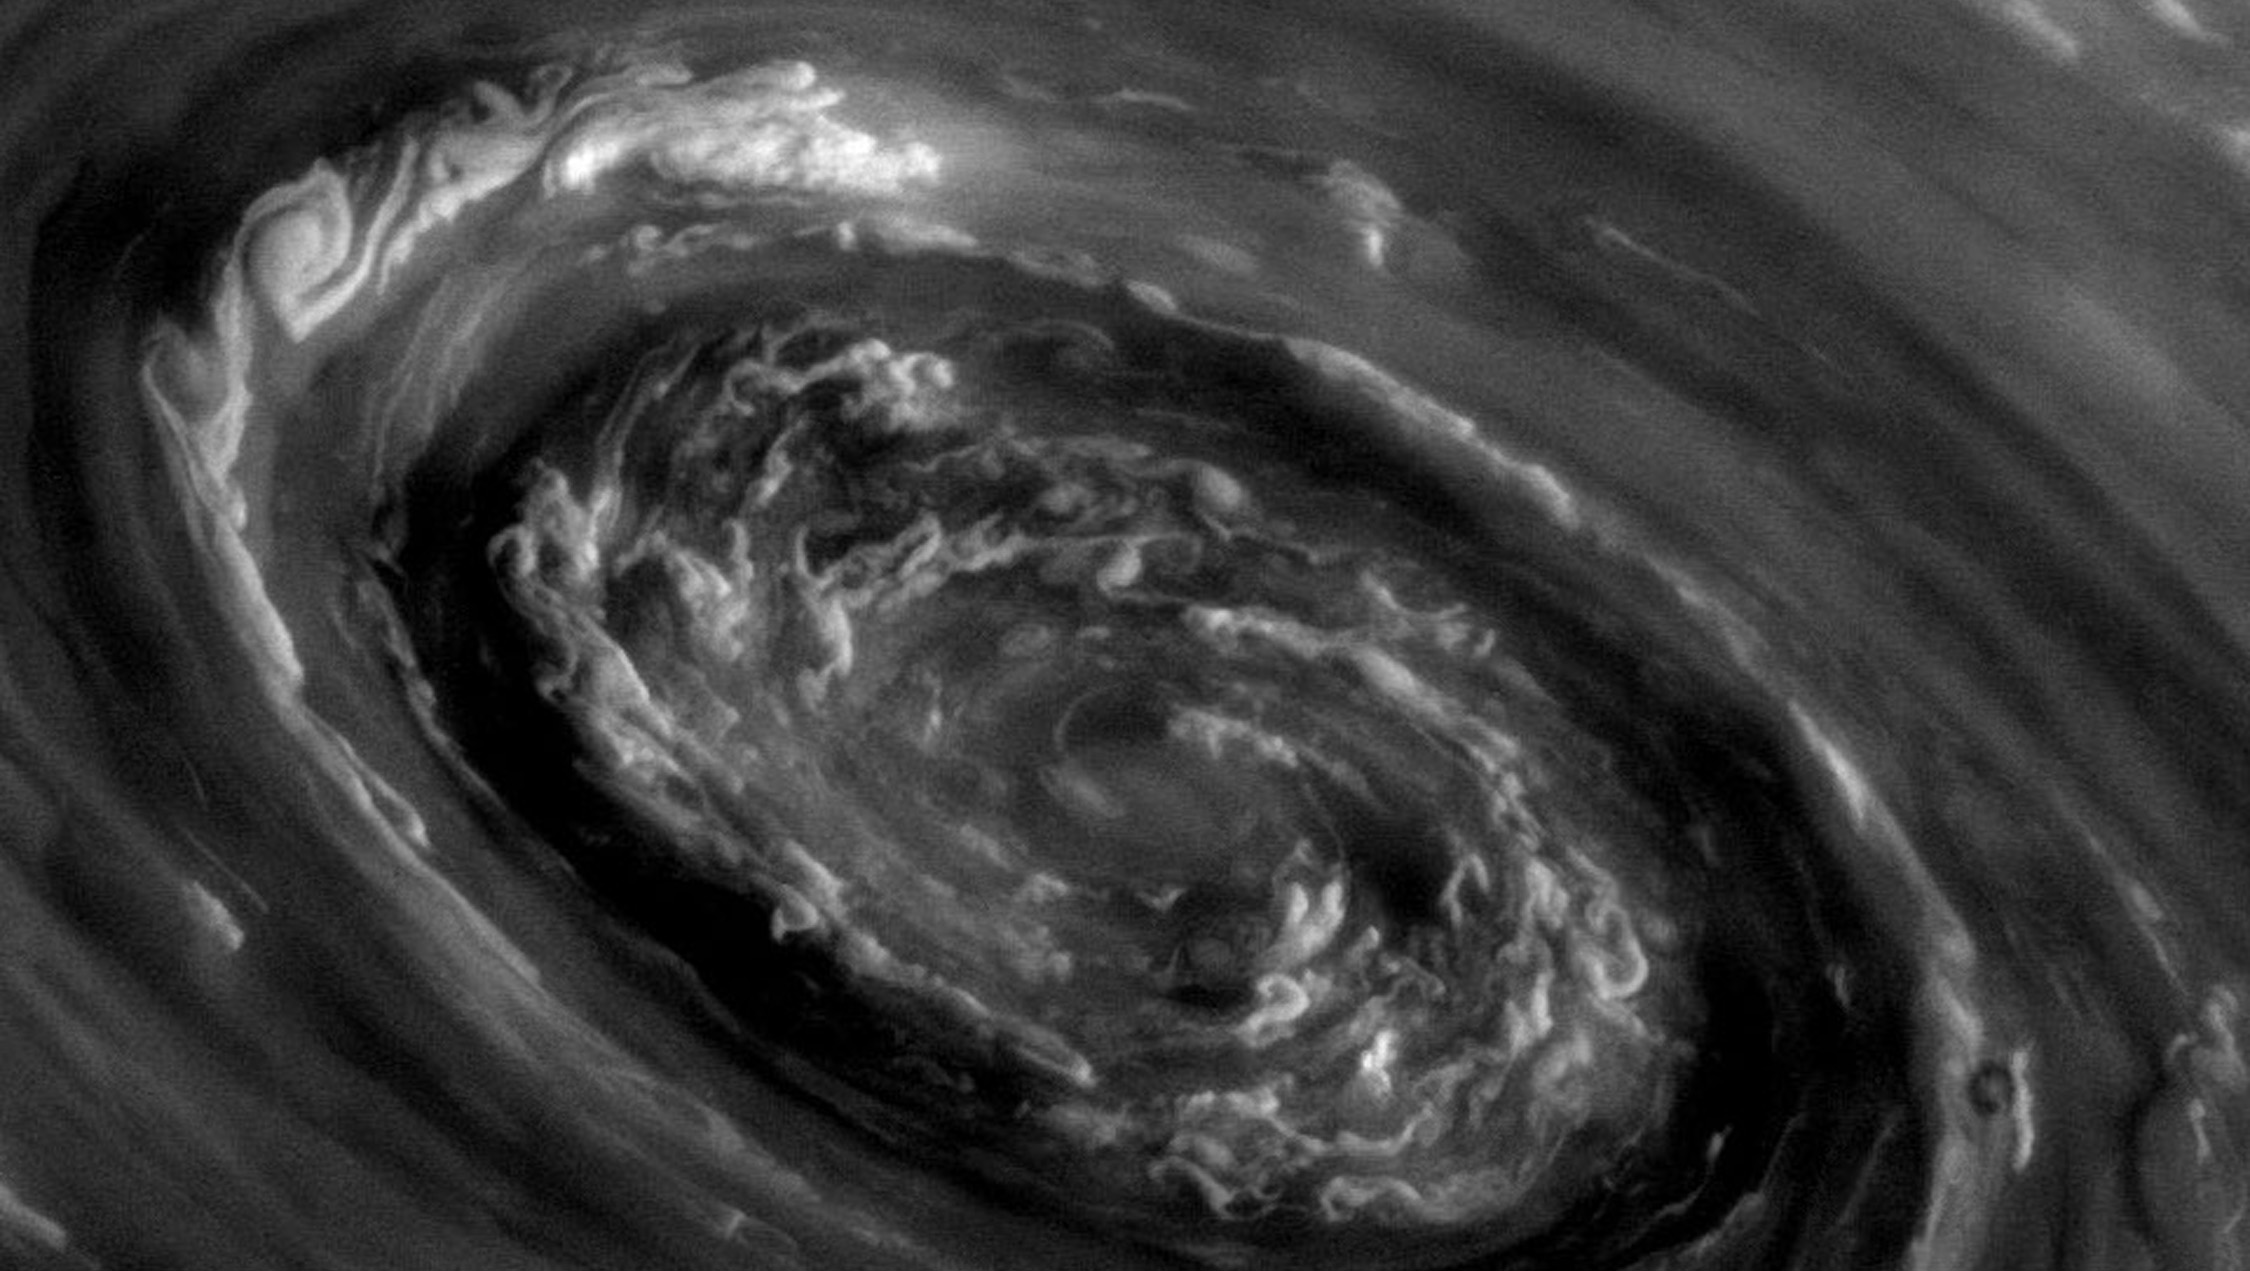 Background: Cassini Saturn Vortex